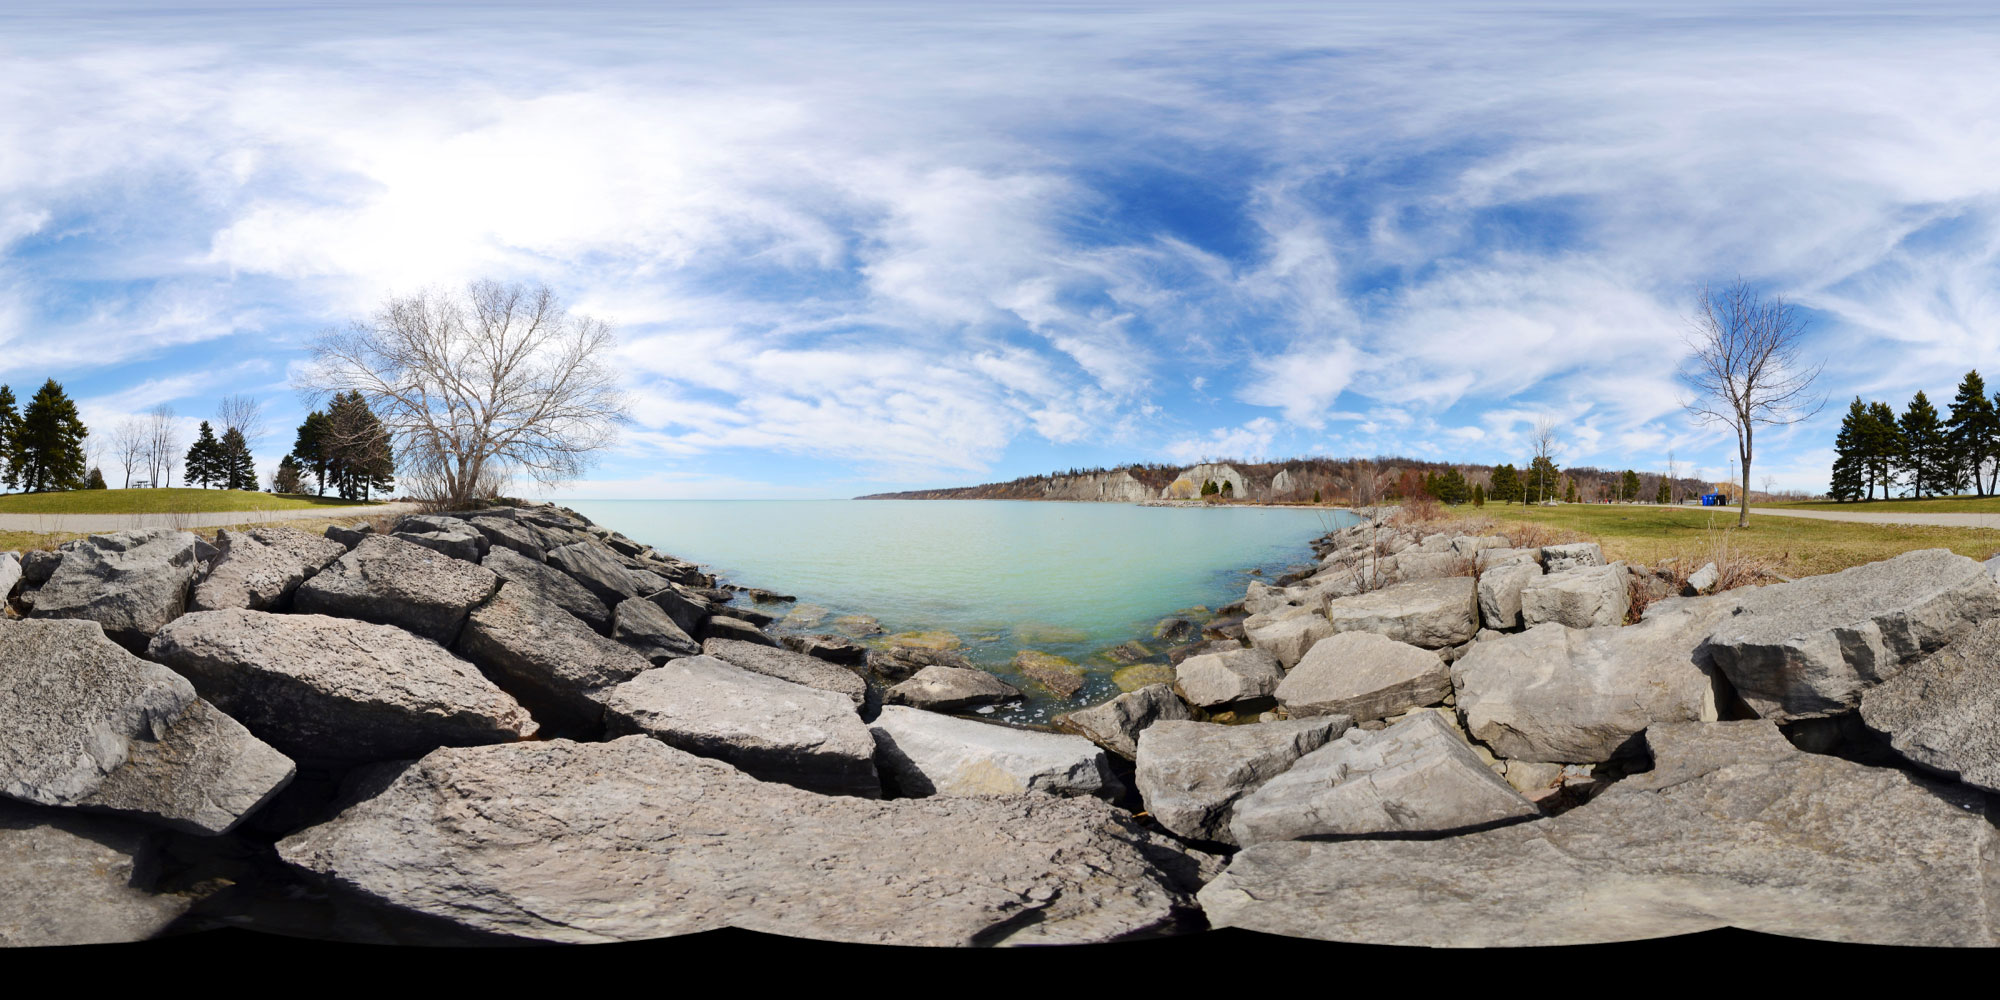 Waterfront-360-Photography-DaveFitzsimmons